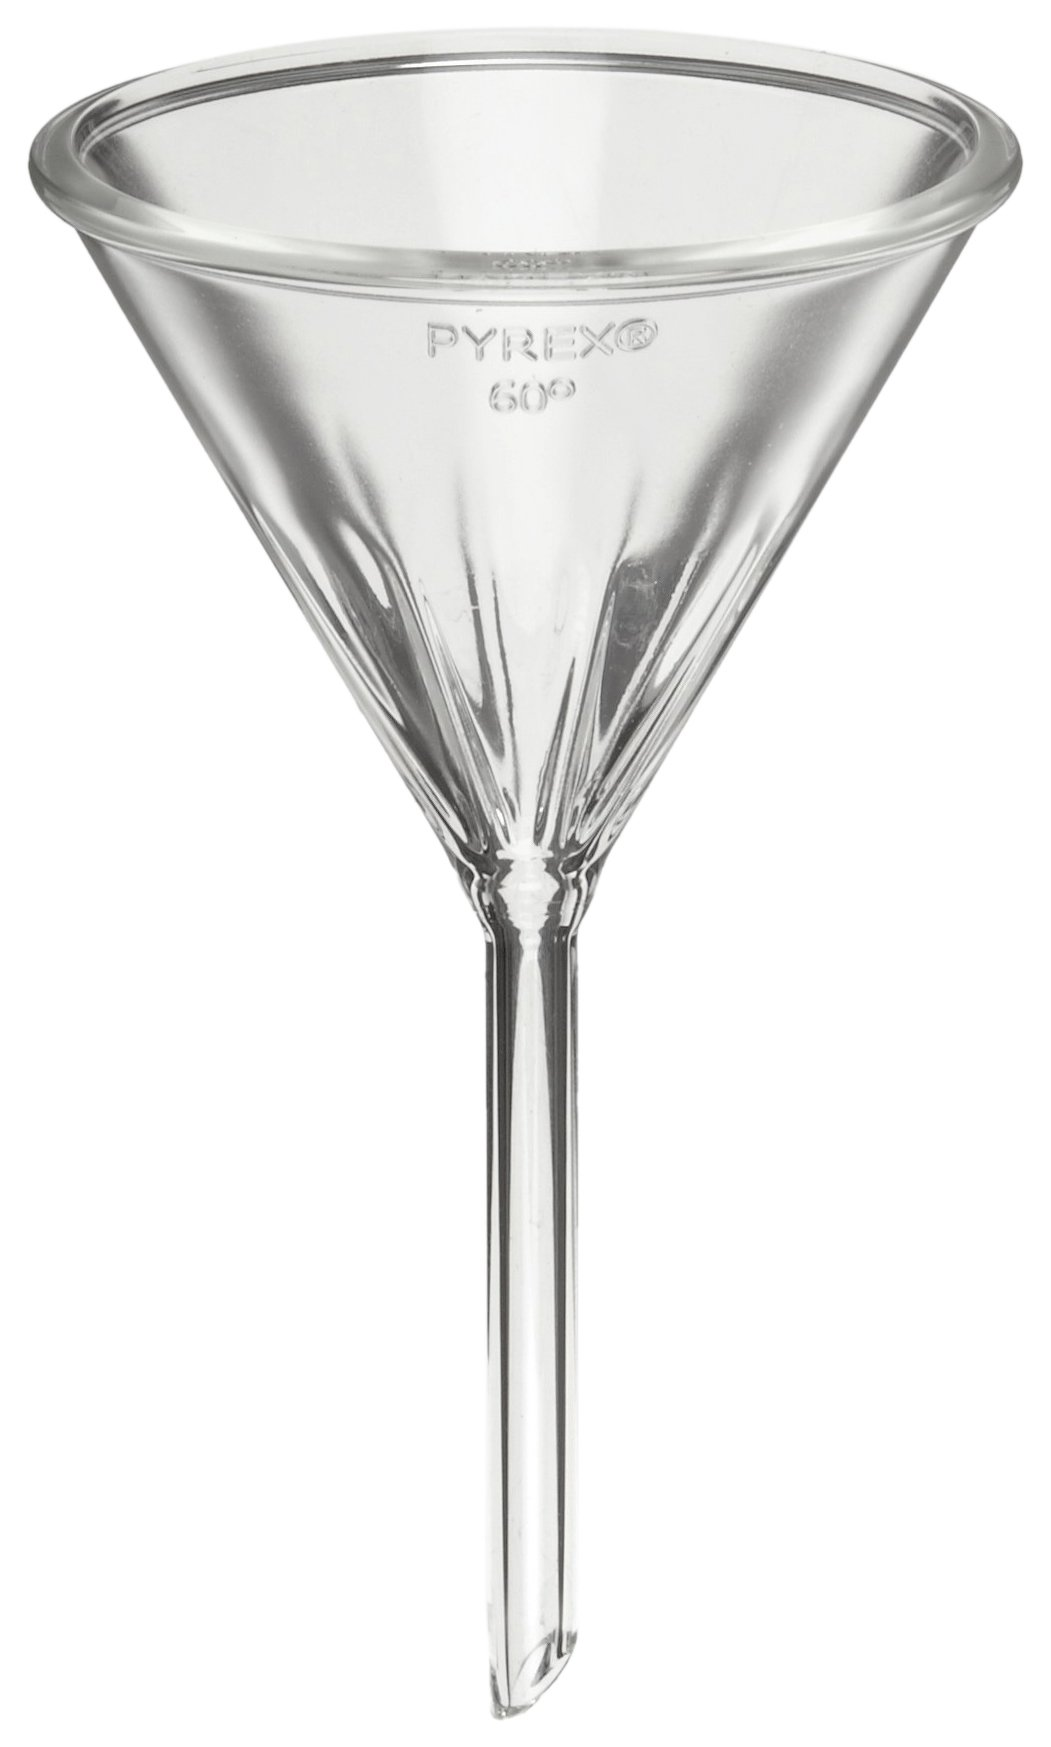 Corning Pyrex 6180-100 Borosilicate Glass Fluted Funnel, with Short Stem, 100mm Diameter (Pack of 6) by Corning